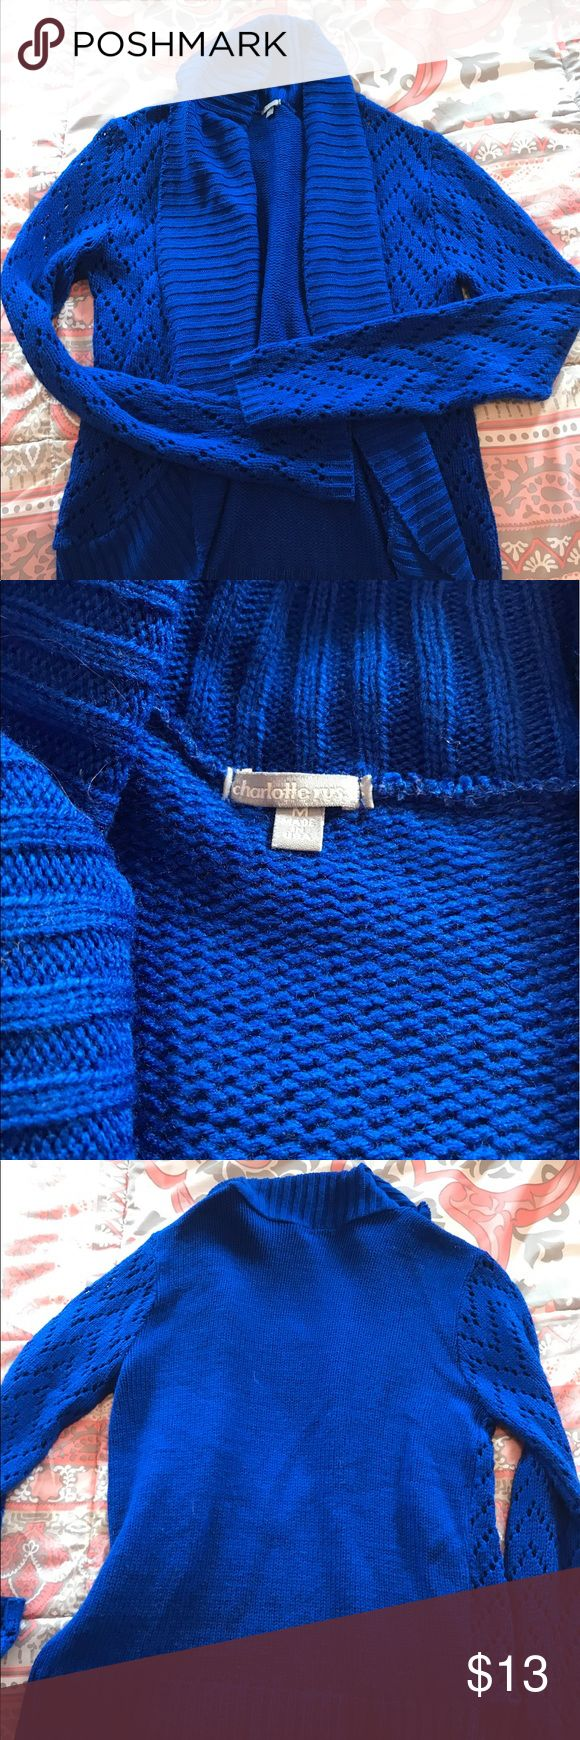 Royal blue sweater cardigan from Charlotte Russe! Worn 3-4 times! Great condition! Charlotte Russe Sweaters Cardigans